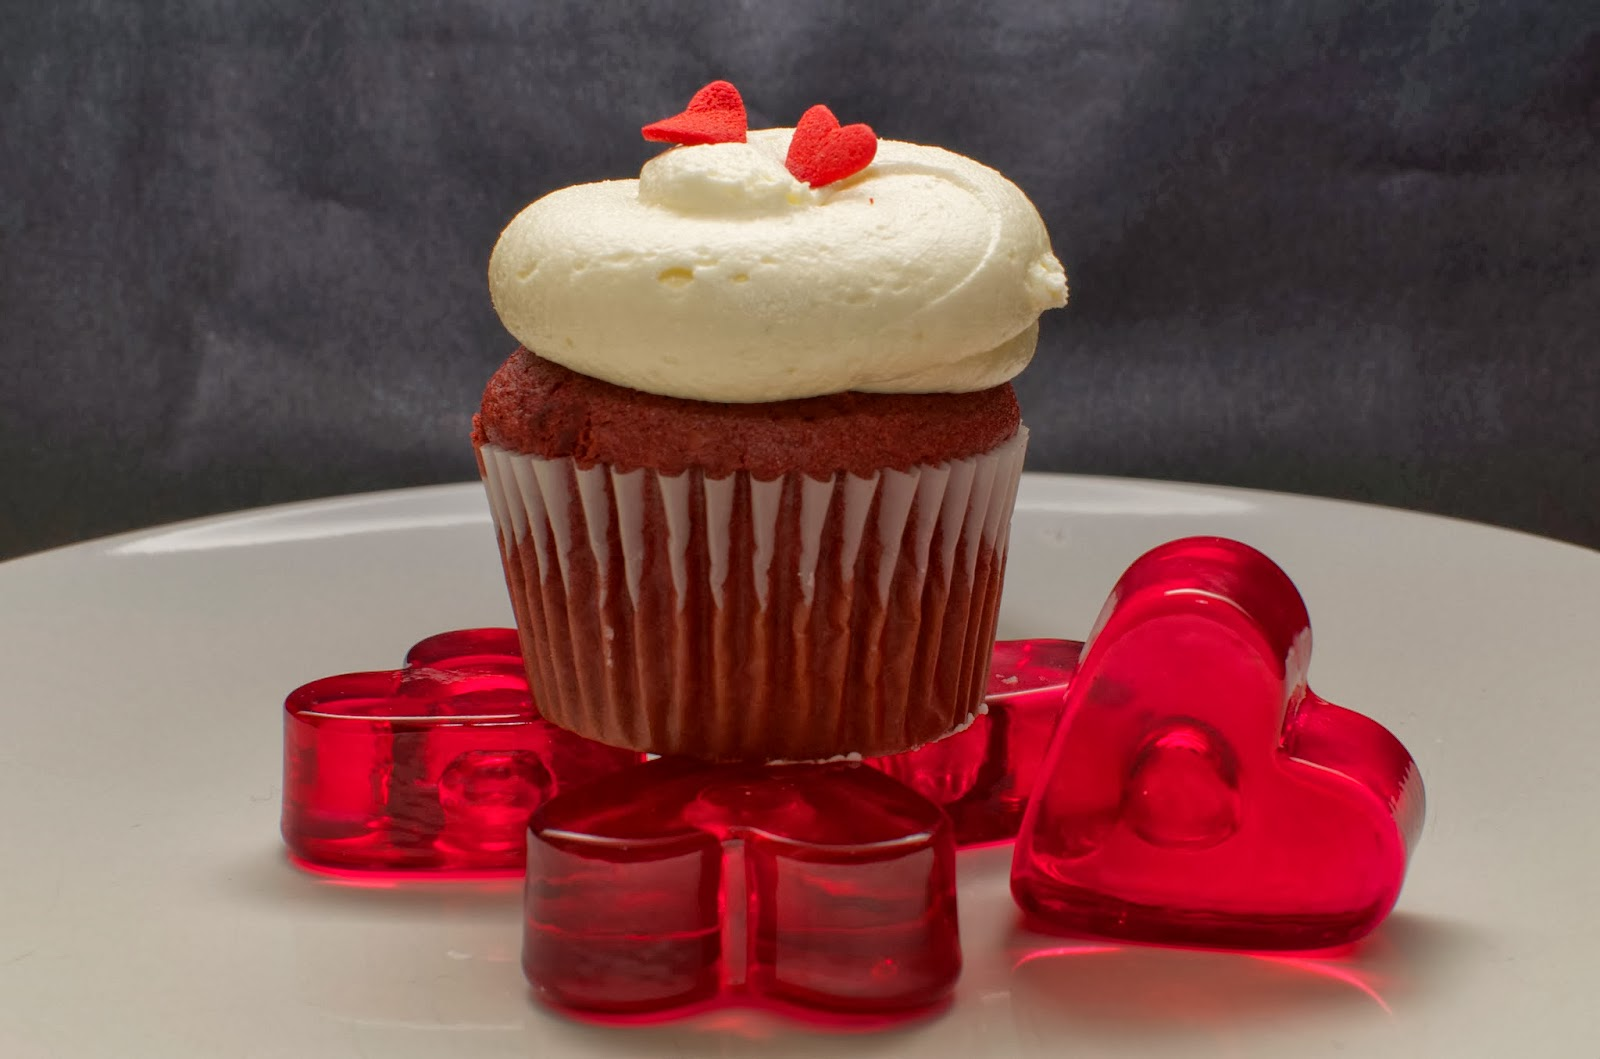 Red velvet cupcake decorated with red hearts sitting on top of heart shaped candle holders